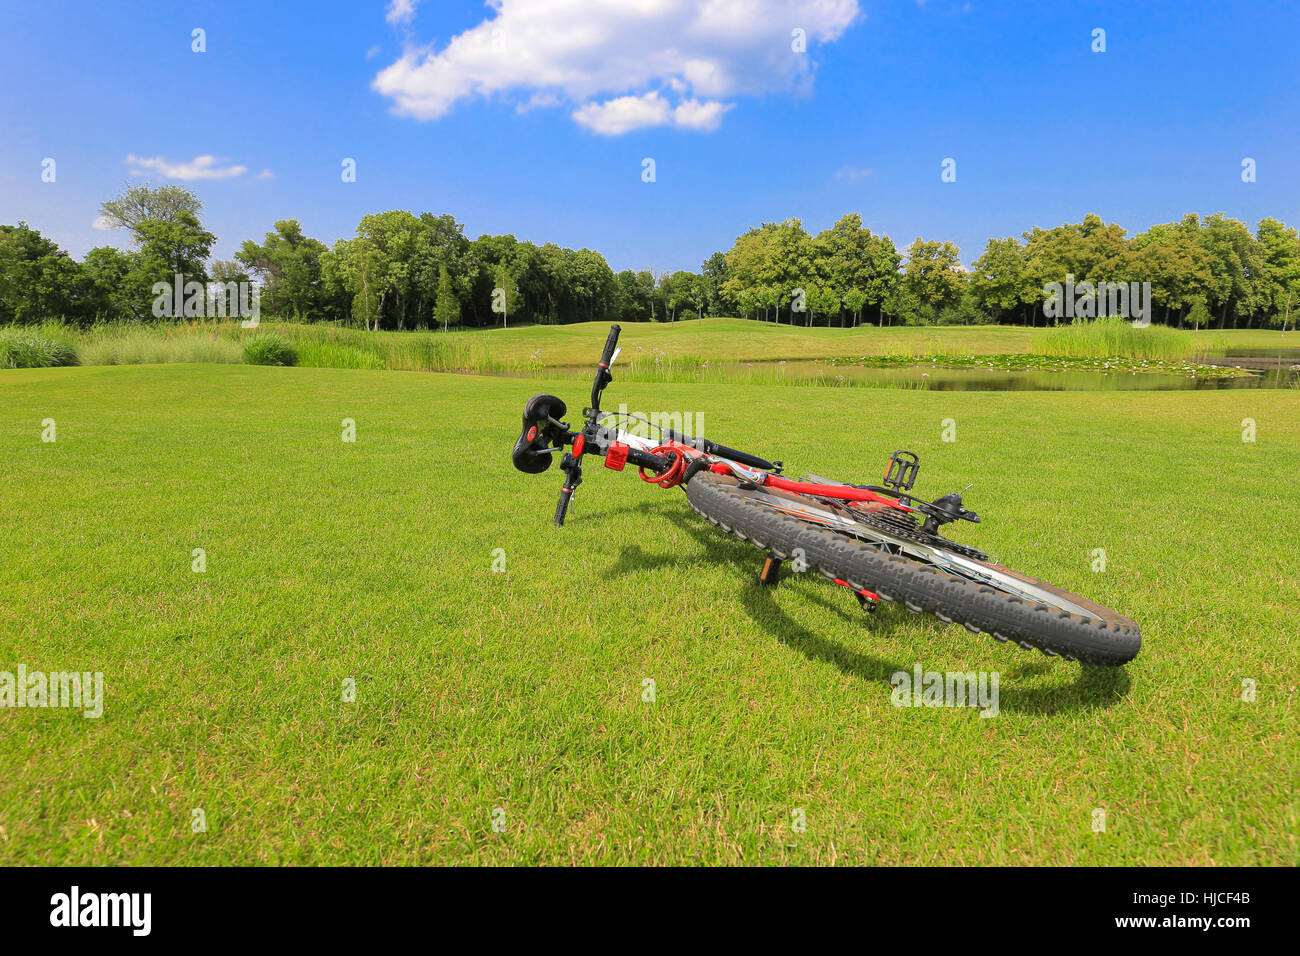 Bicycle on the grass - Stock Image